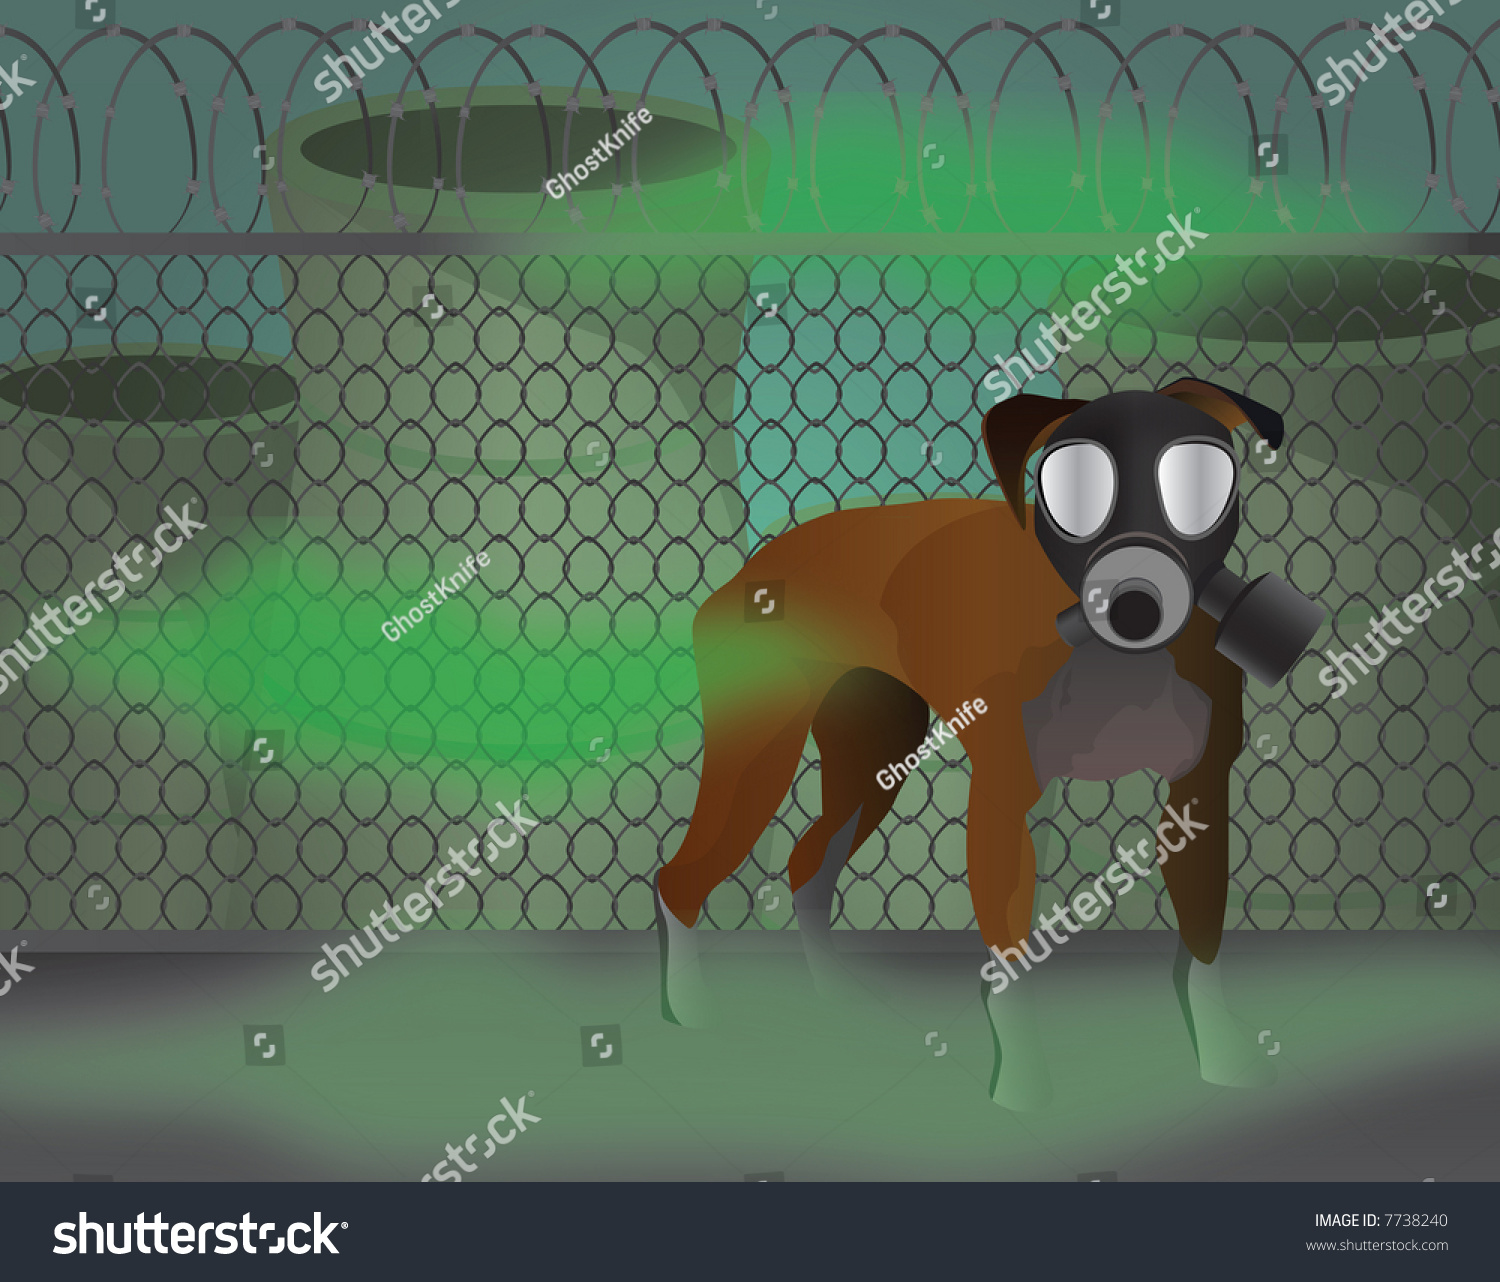 Cartoon dog stock photos images amp pictures shutterstock - Dog In Gas Mask